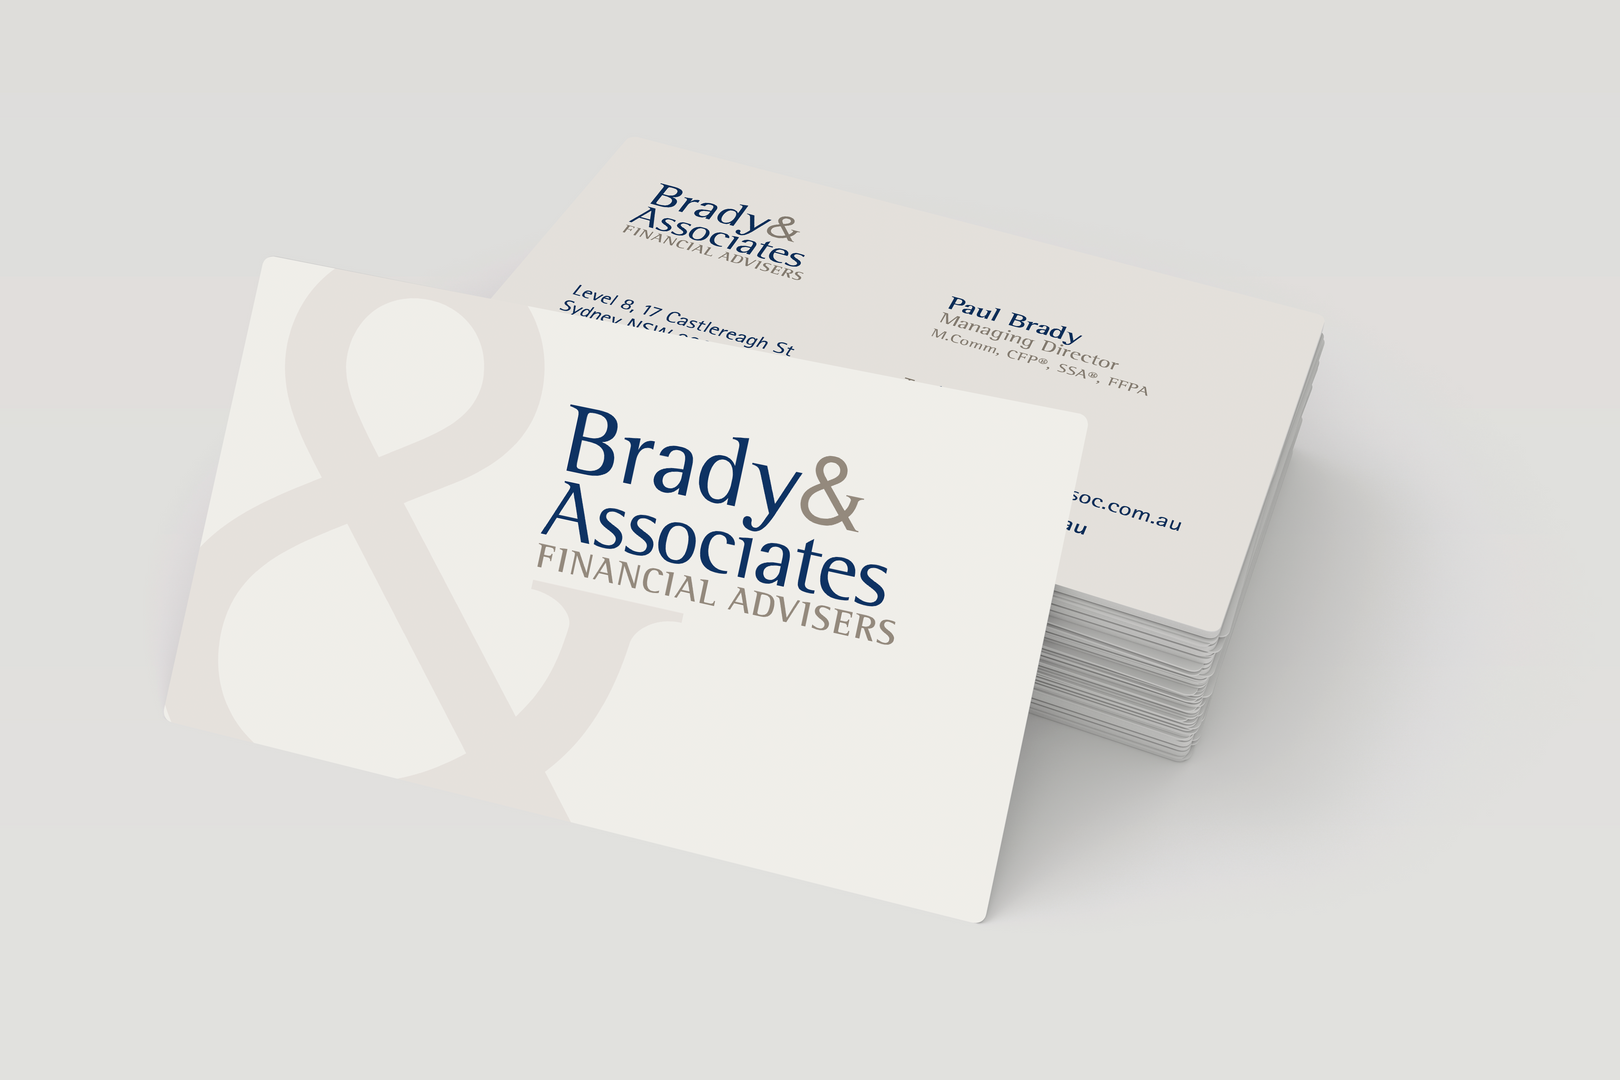 Brady & Associates – Business Cards